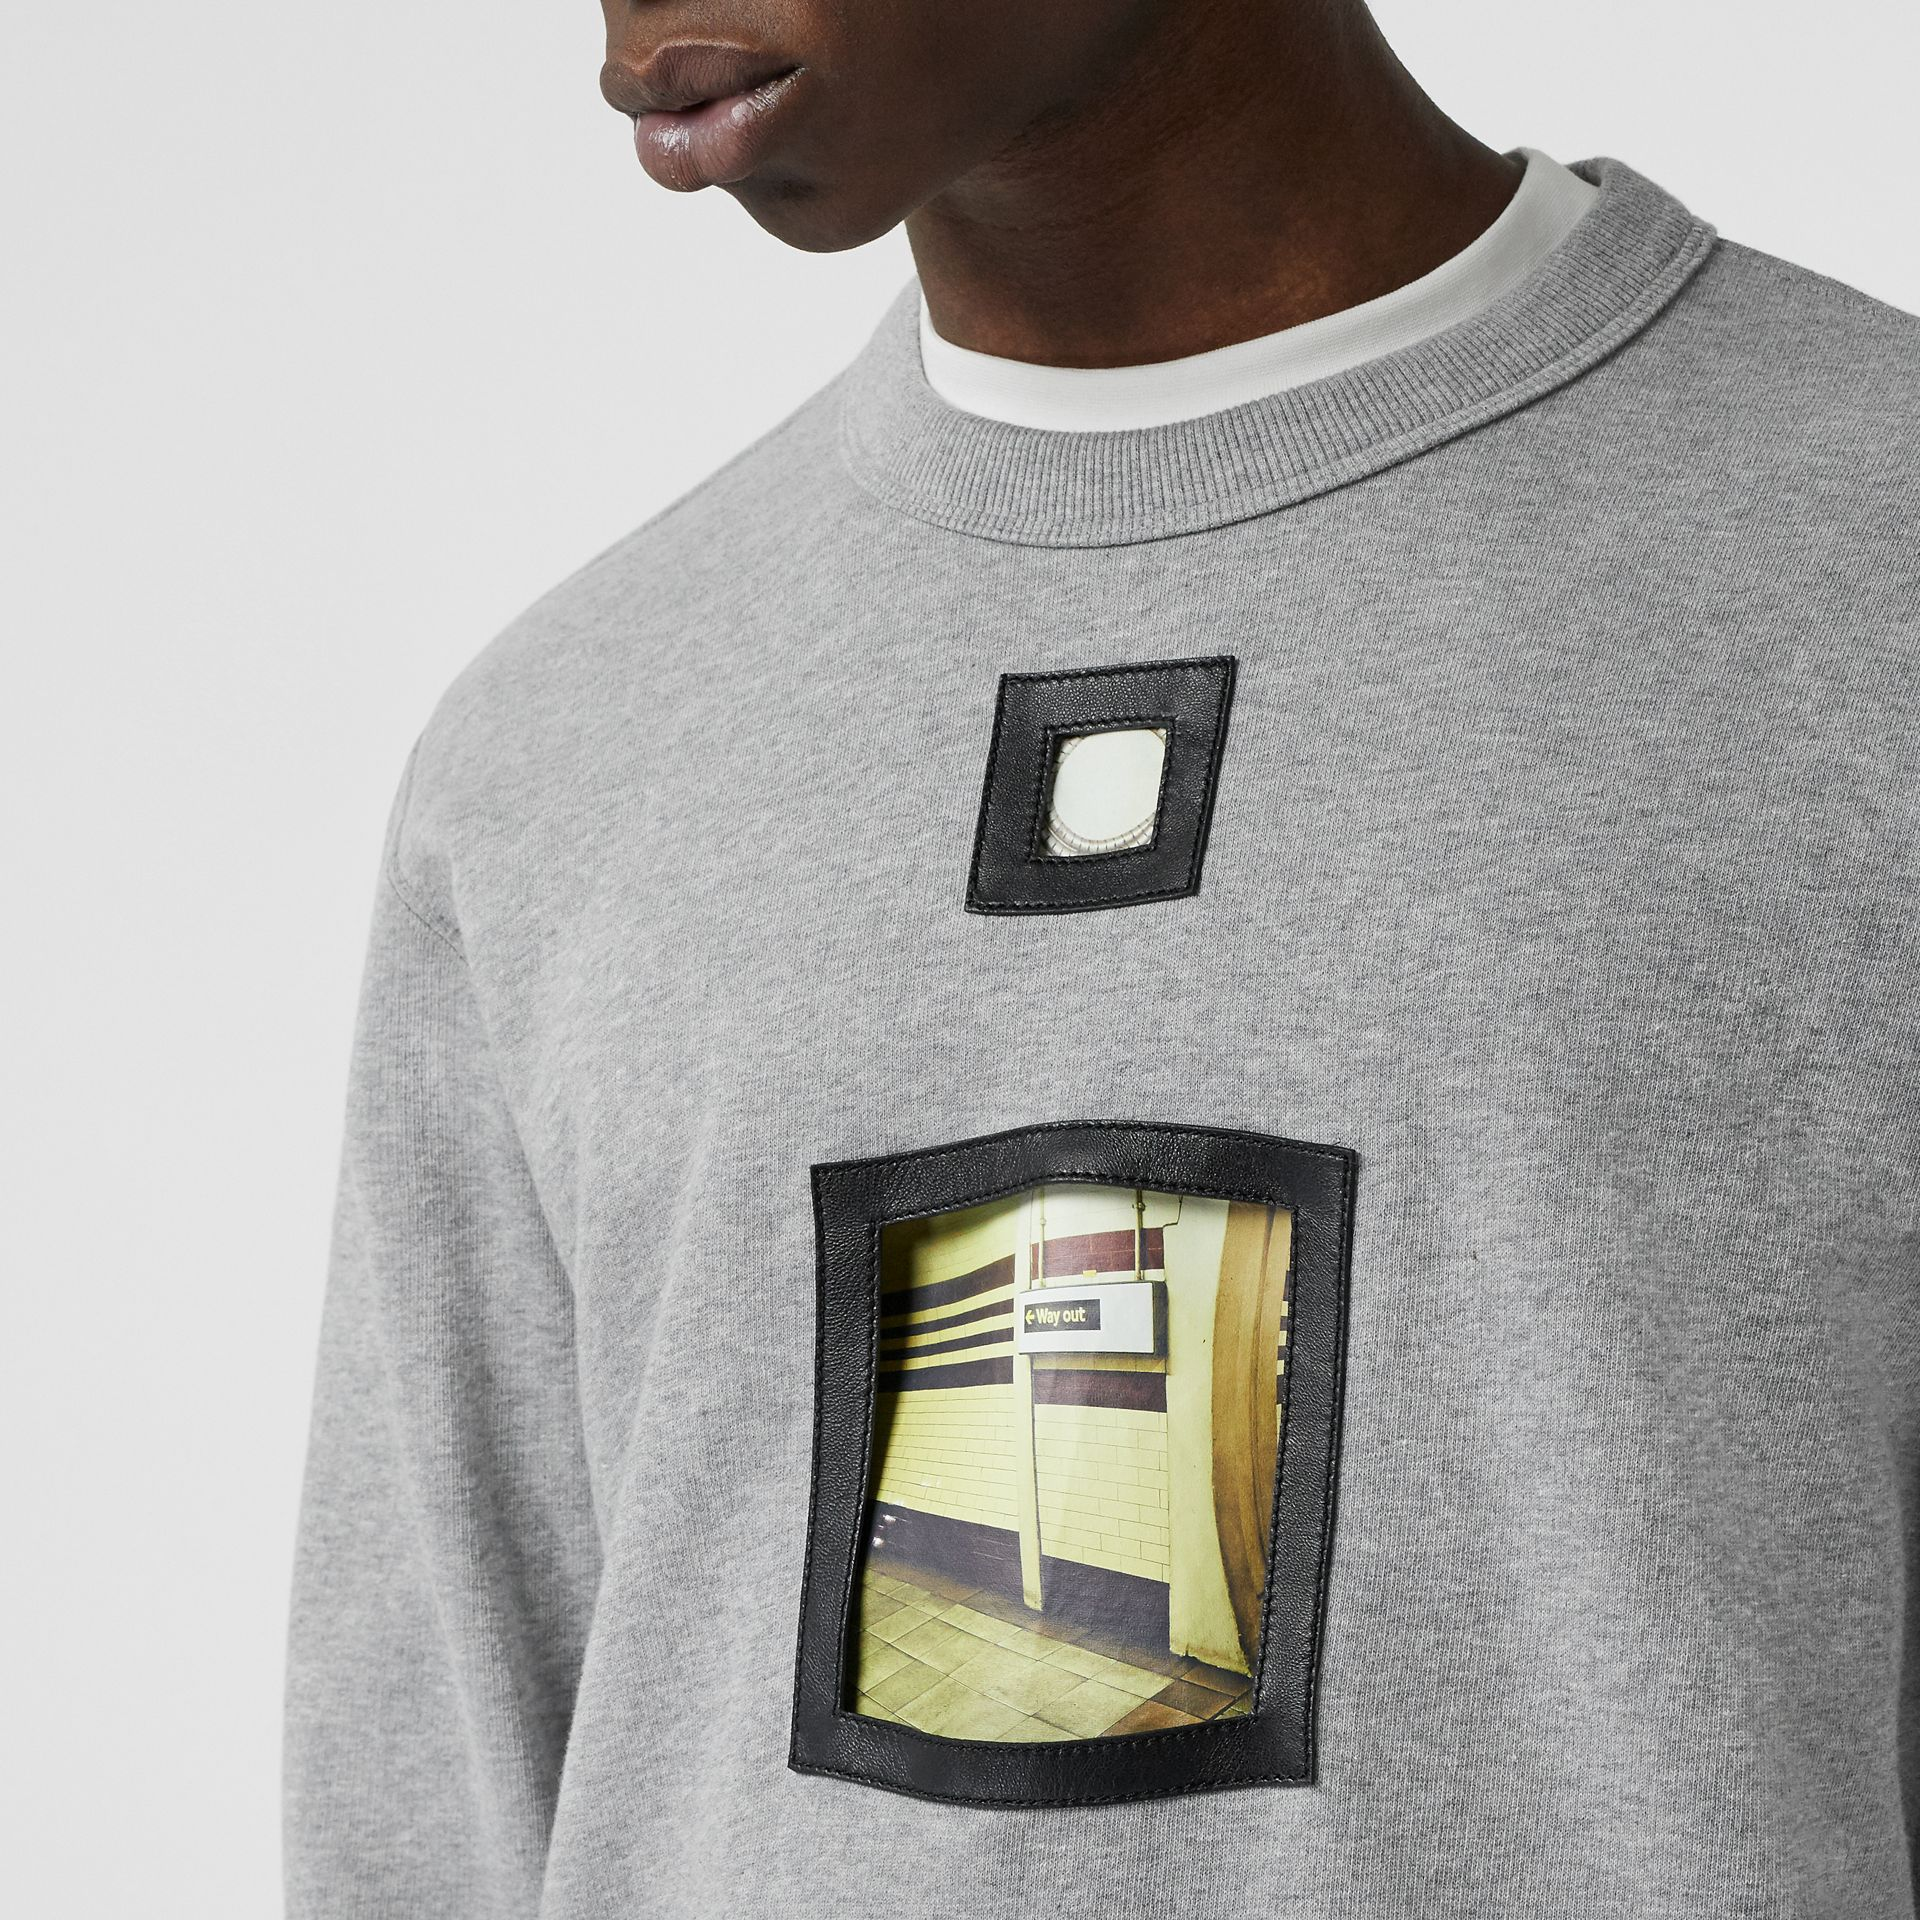 Cut-out Detail Cotton Sweatshirt in Pale Grey Melange - Men | Burberry Hong Kong - gallery image 1